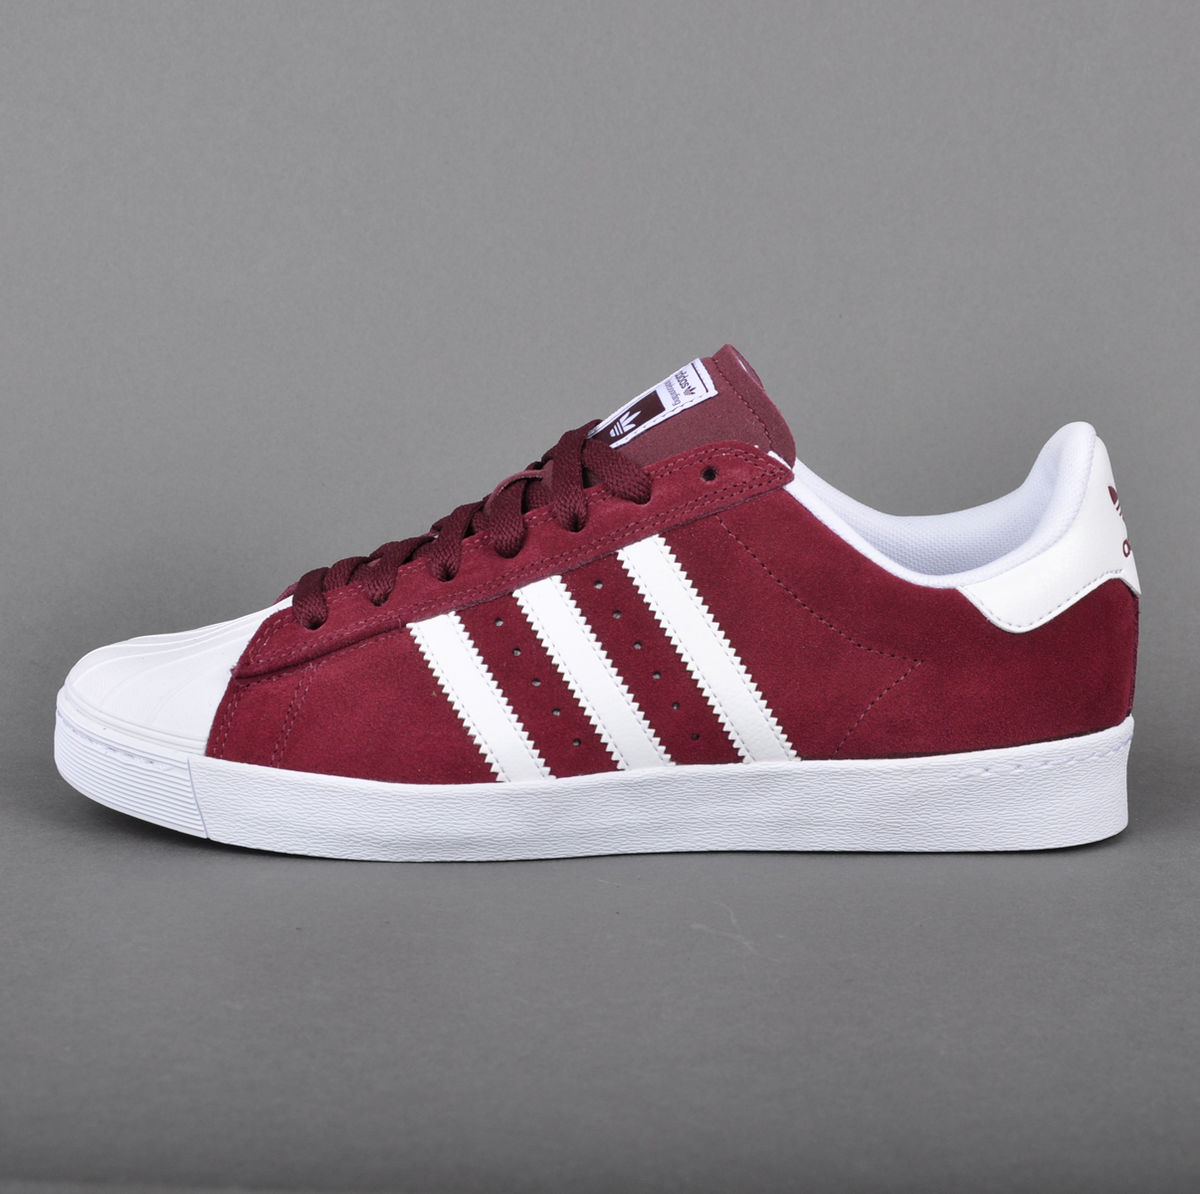 Cheap Adidas Men 's Superstar Vulc ADV Shoes Red Cheap Adidas Canada